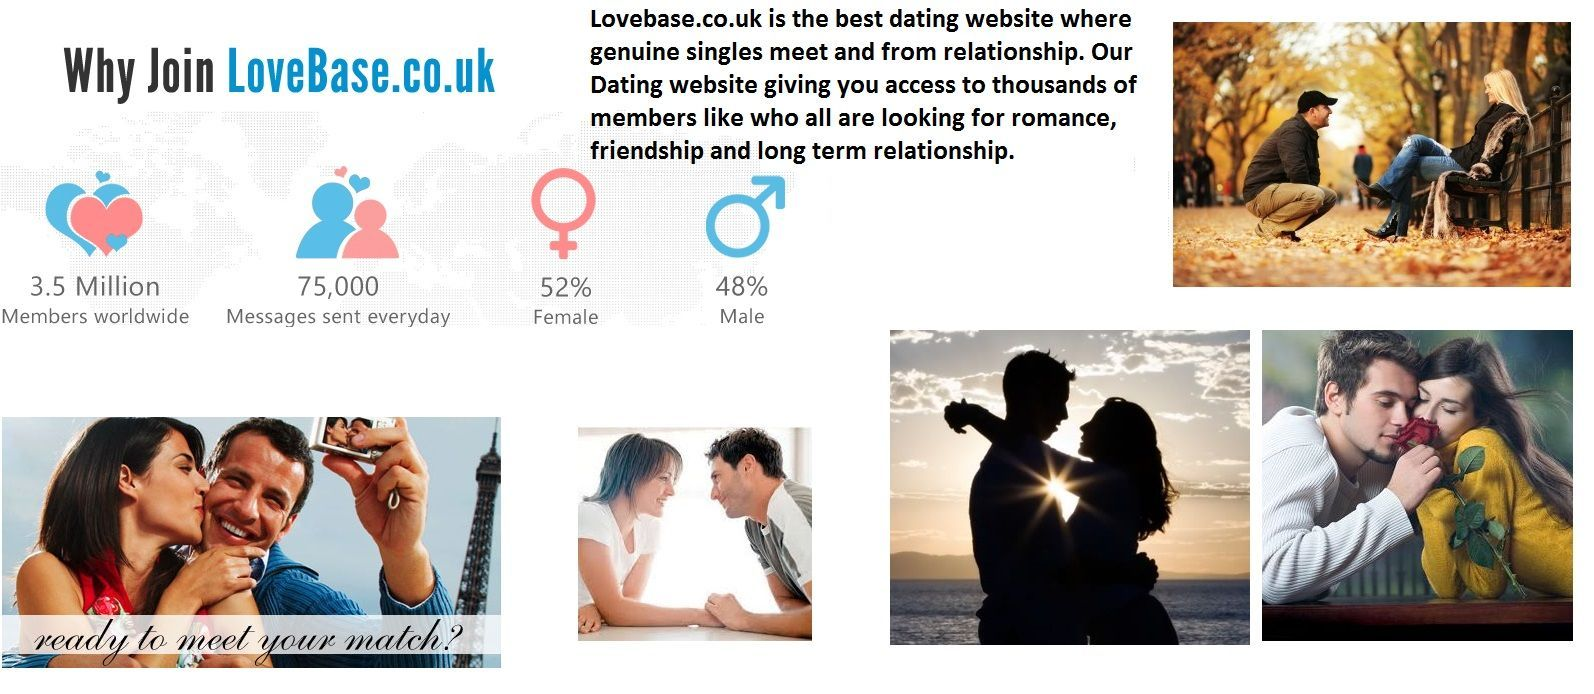 dating relationship terminology In common usage, the term 'single' is often used to refer to someone who is not involved in any type of serious romantic relationship, including long-term dating, engagement, marriage, or someone who is 'single by choice' single people may participate in dating and other activities to find a long-term partner or spouse.